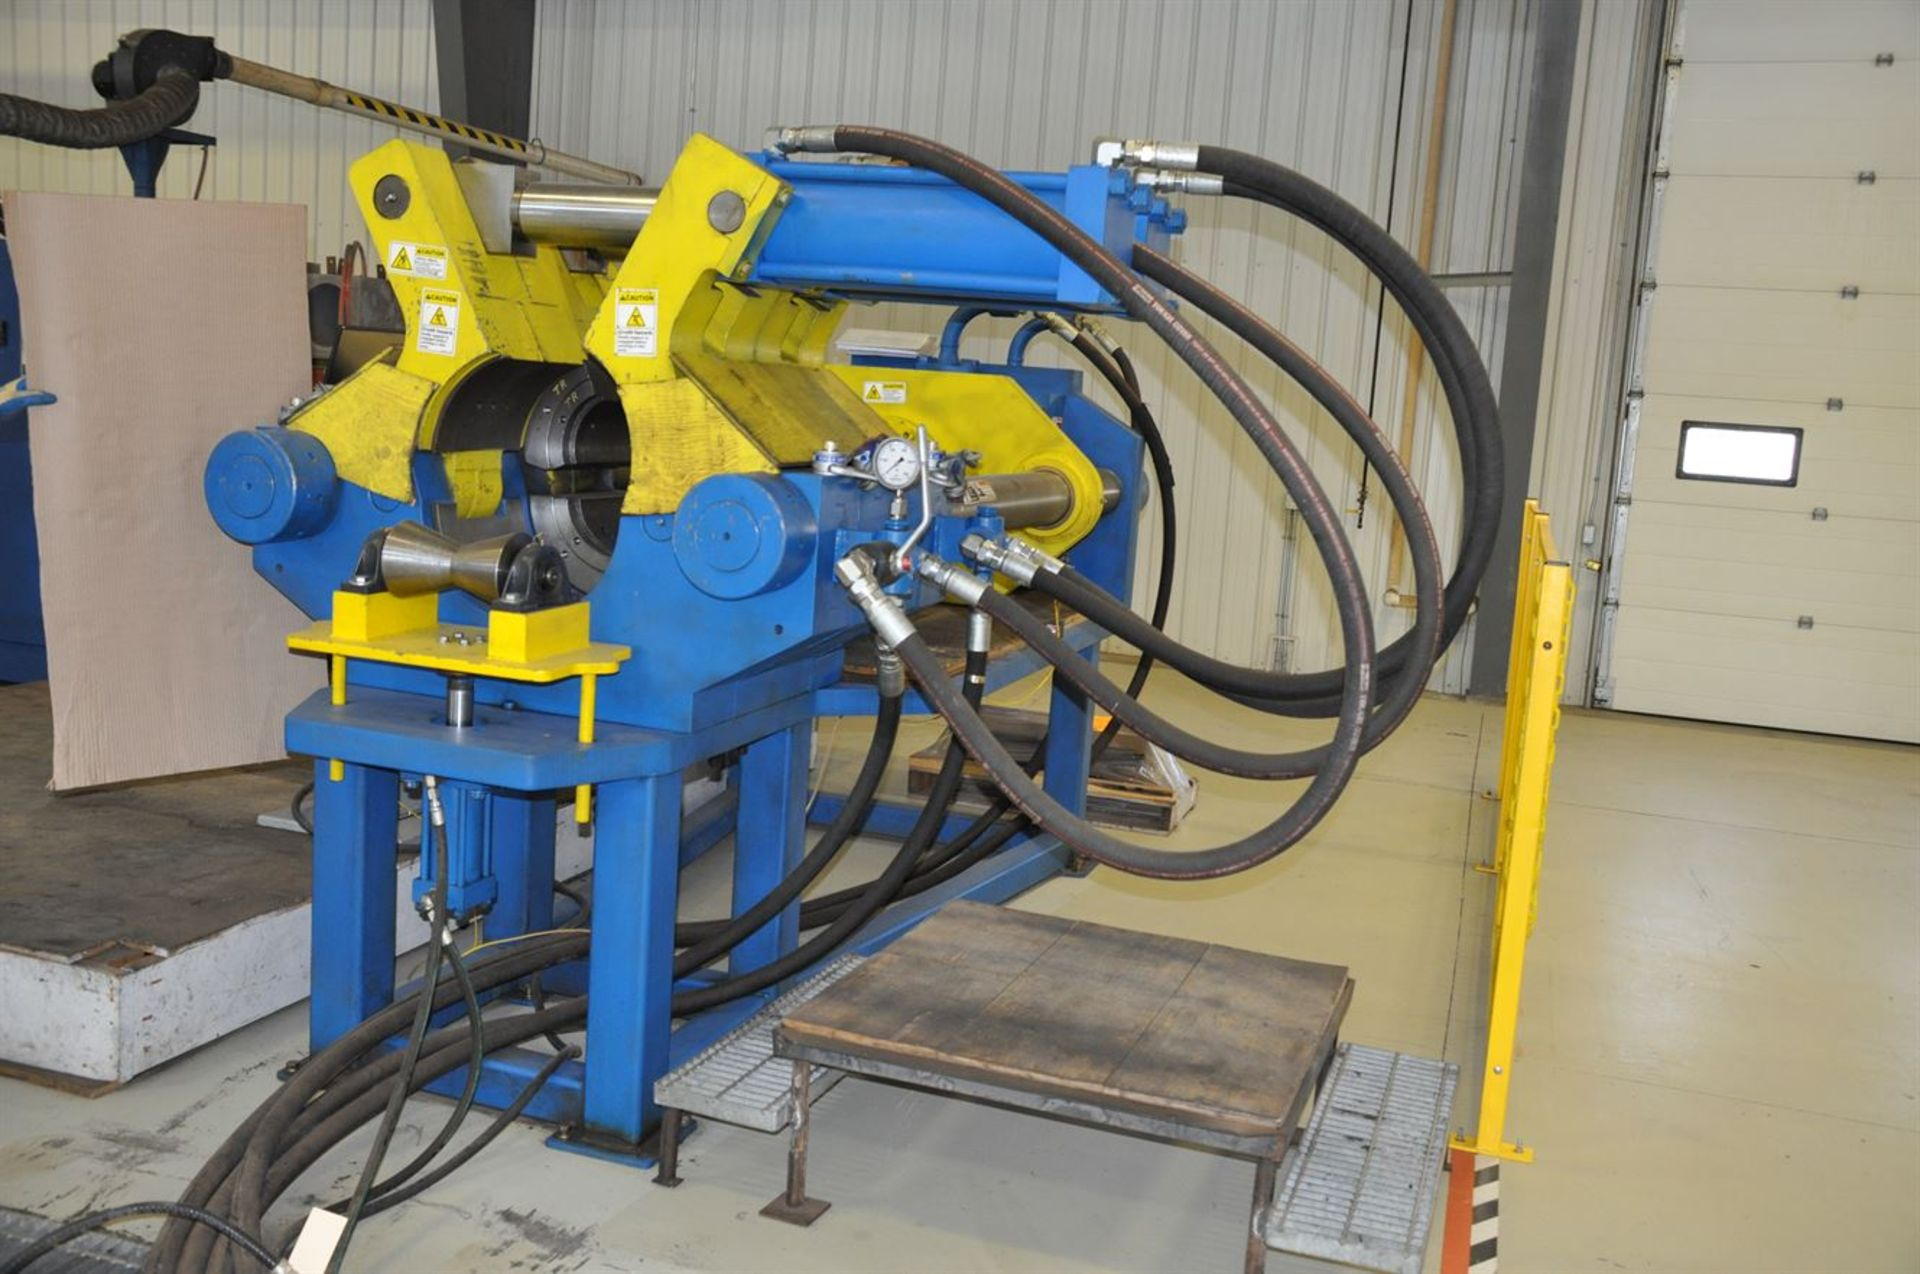 2012 MECHANICAL REPAIR & ENGINEERING INC. 500 Ton Horizontal Hydraulic Swaging Press, s/n 21587, - Image 2 of 5